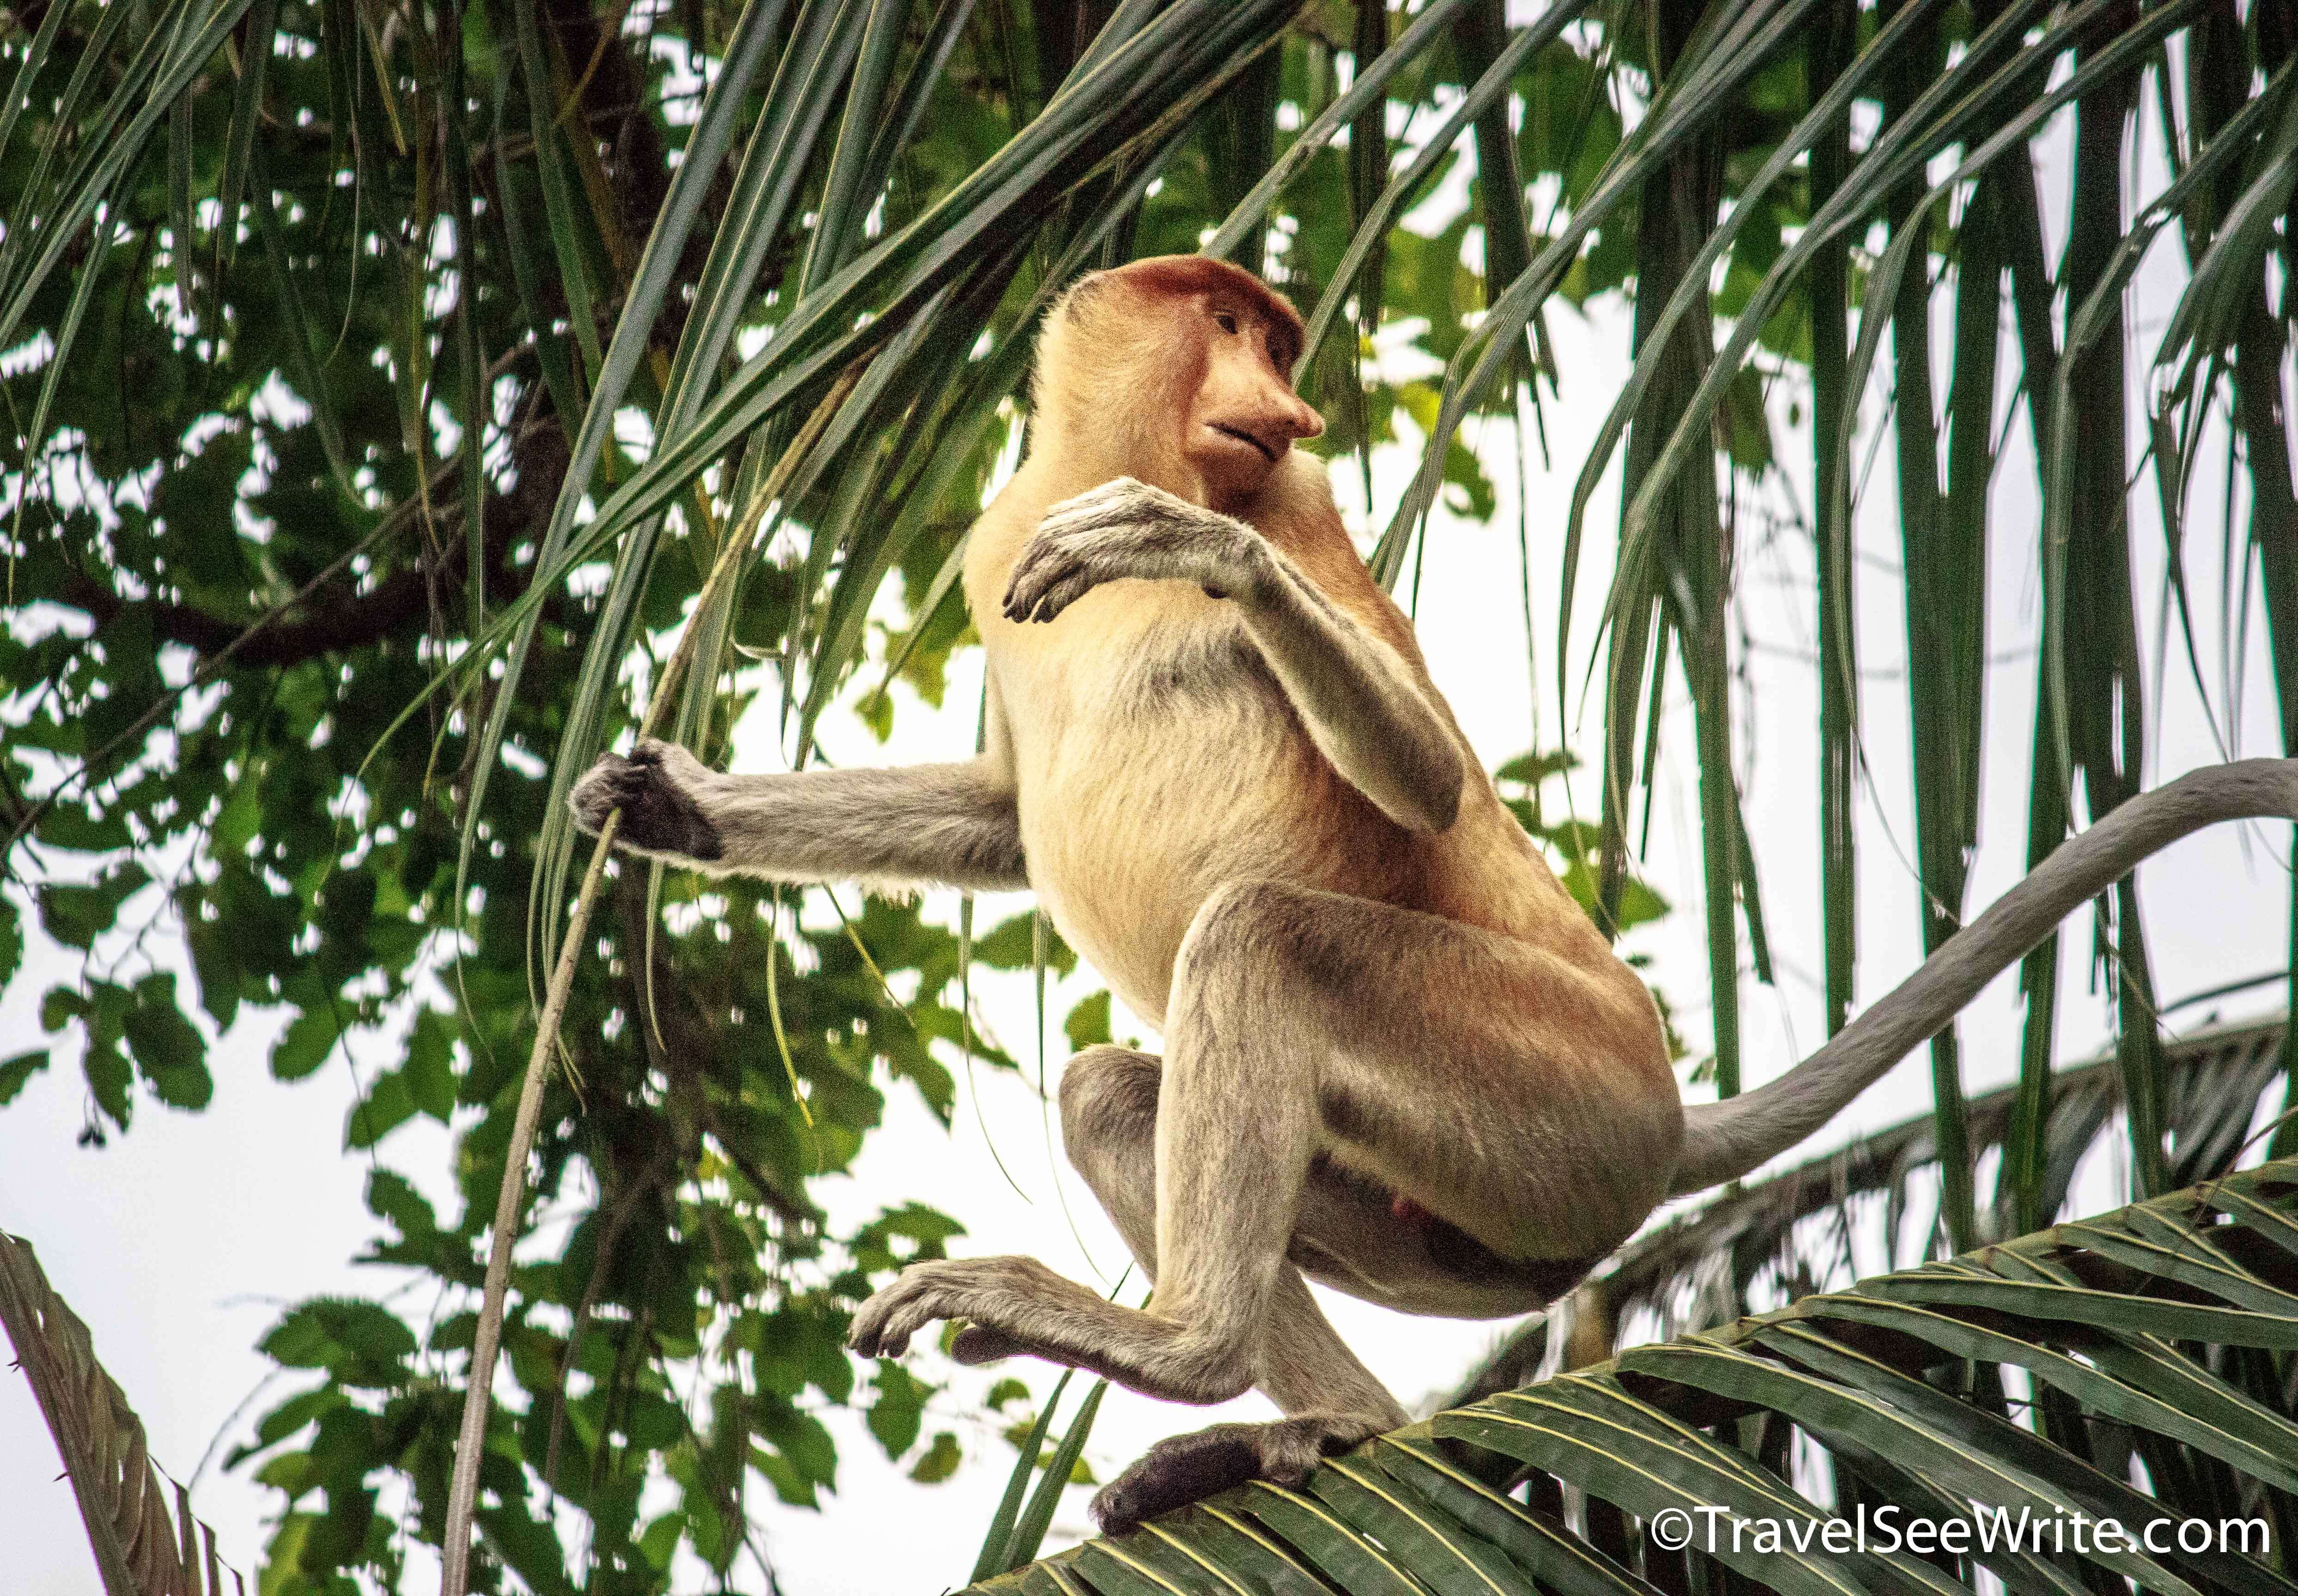 Close up of a Proboscis monkey on a tree branch - southeast asia travel